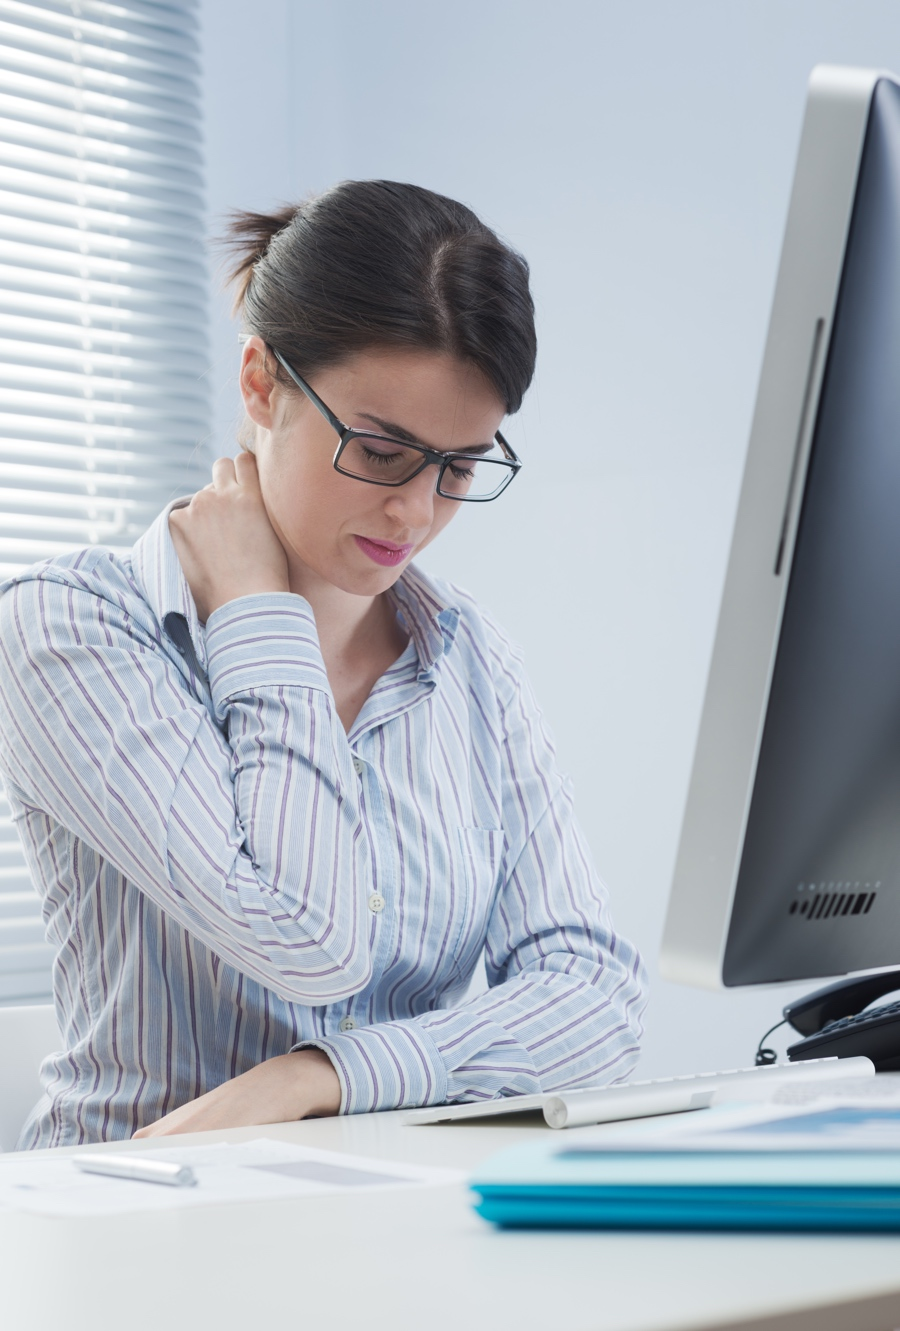 Female employee seated rubbing neck area